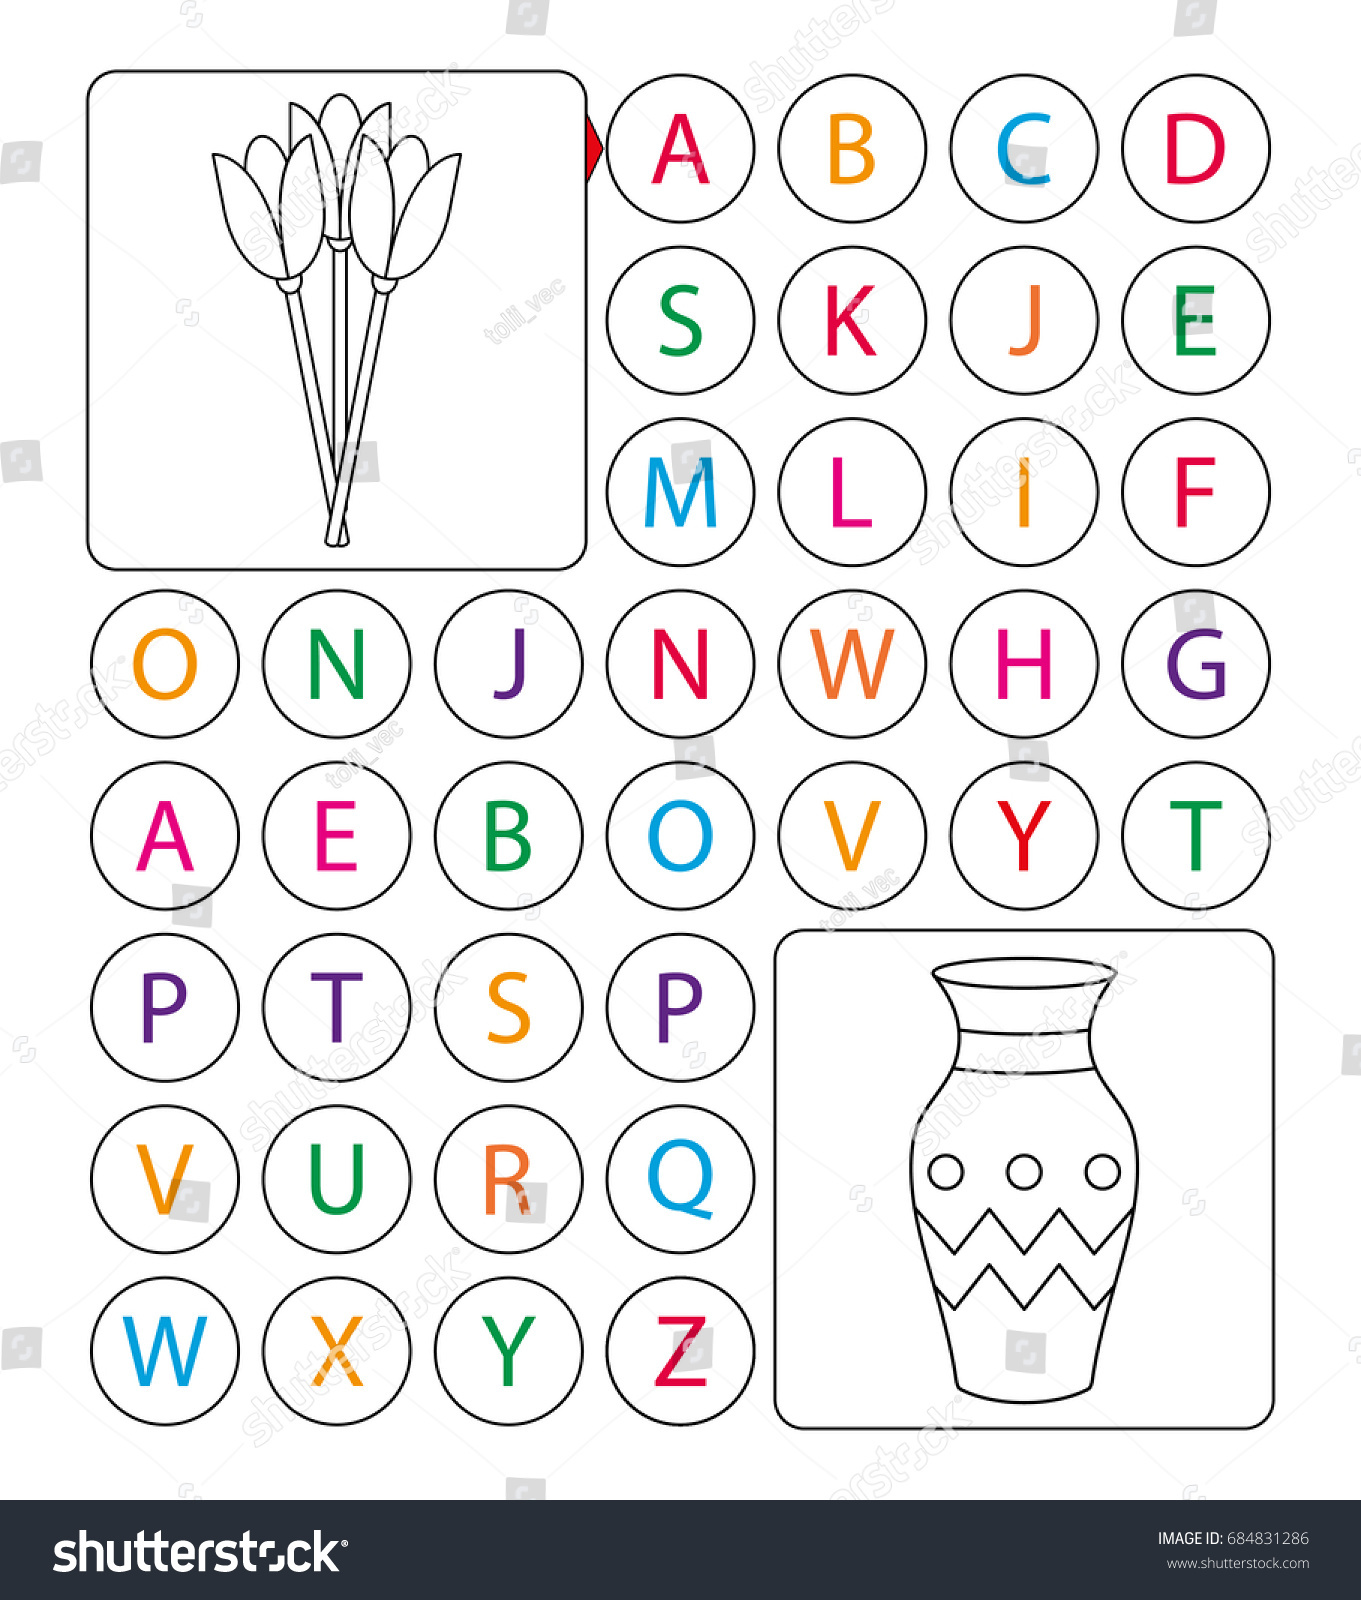 alphabetic labyrinth puzzle worksheet learning letters stock